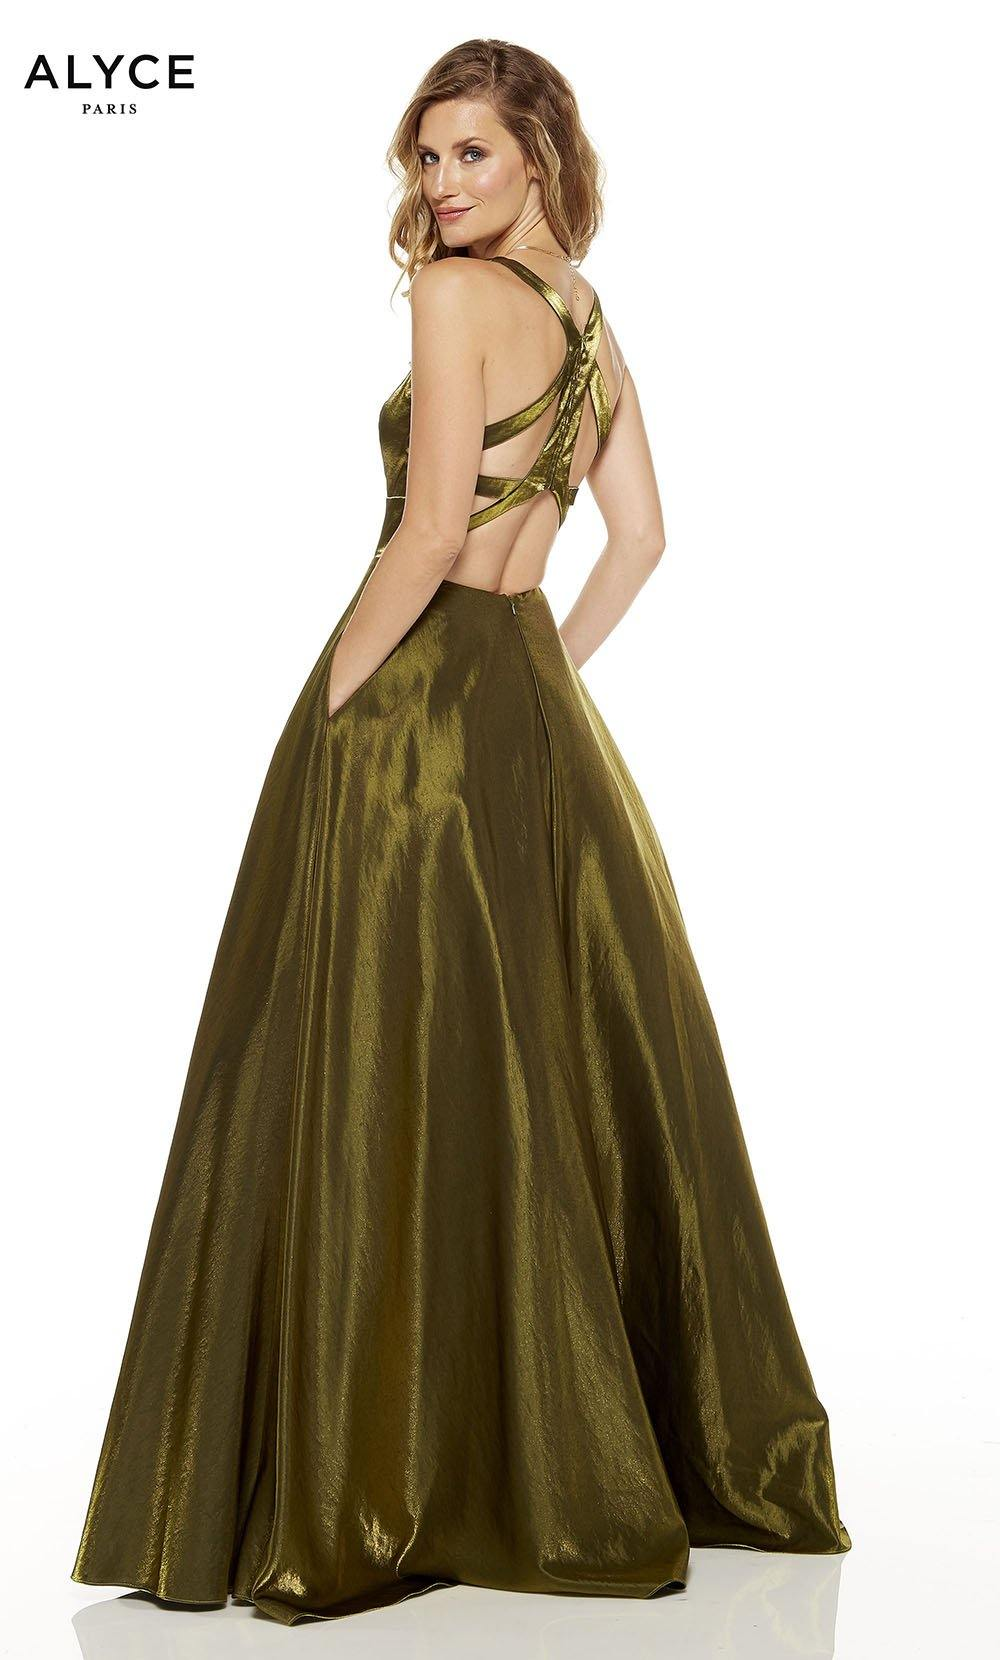 Olive Green red-carpet gown with a strappy back